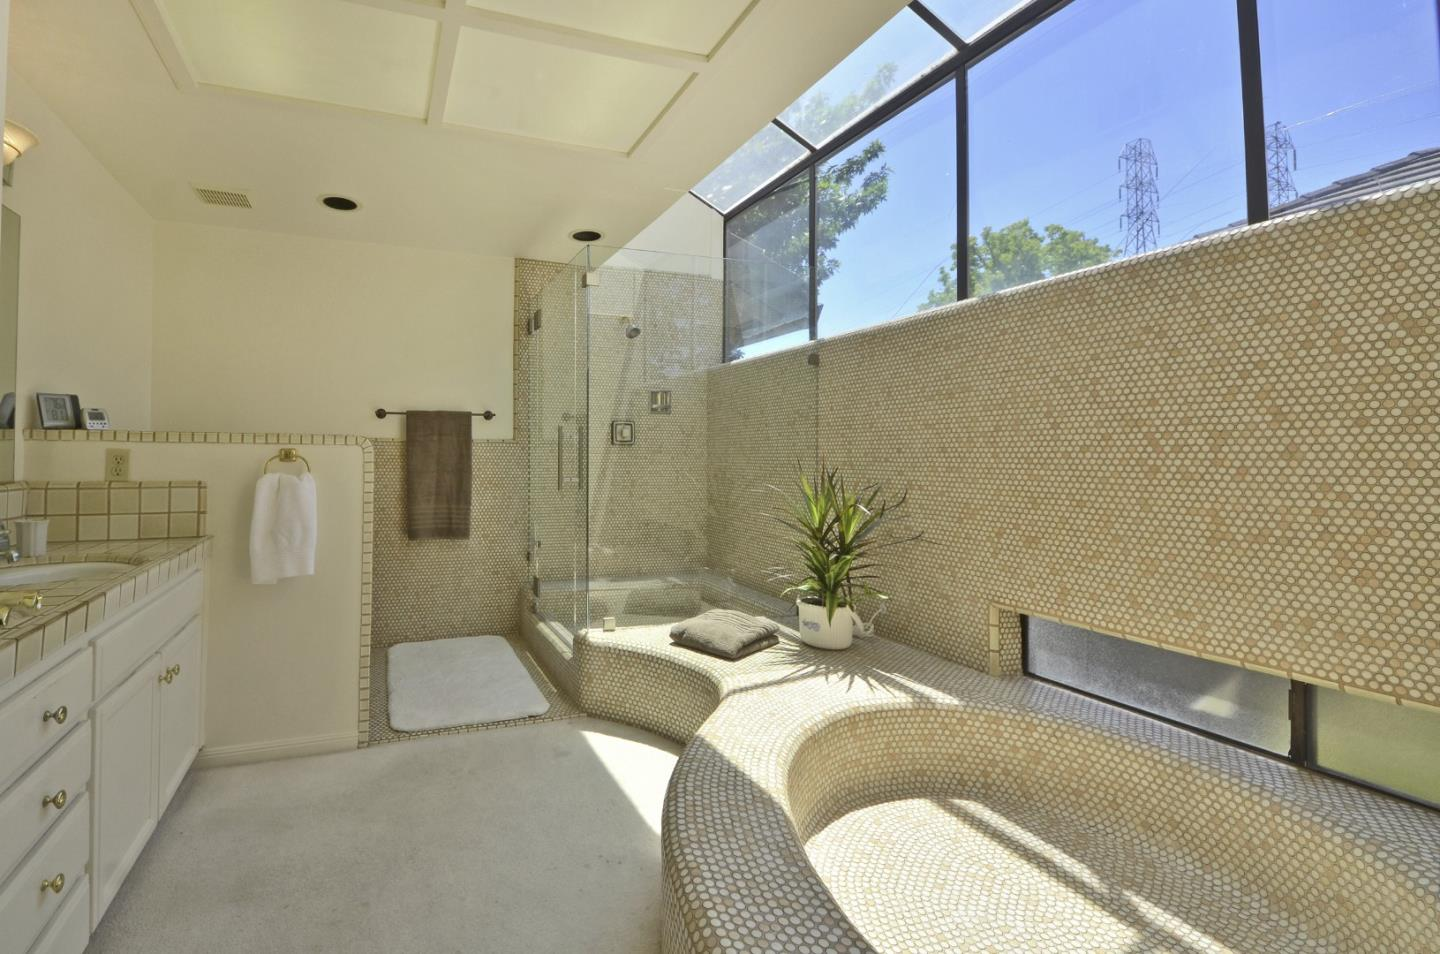 Additional photo for property listing at 5963 Drytown Place  San Jose, カリフォルニア 95120 アメリカ合衆国